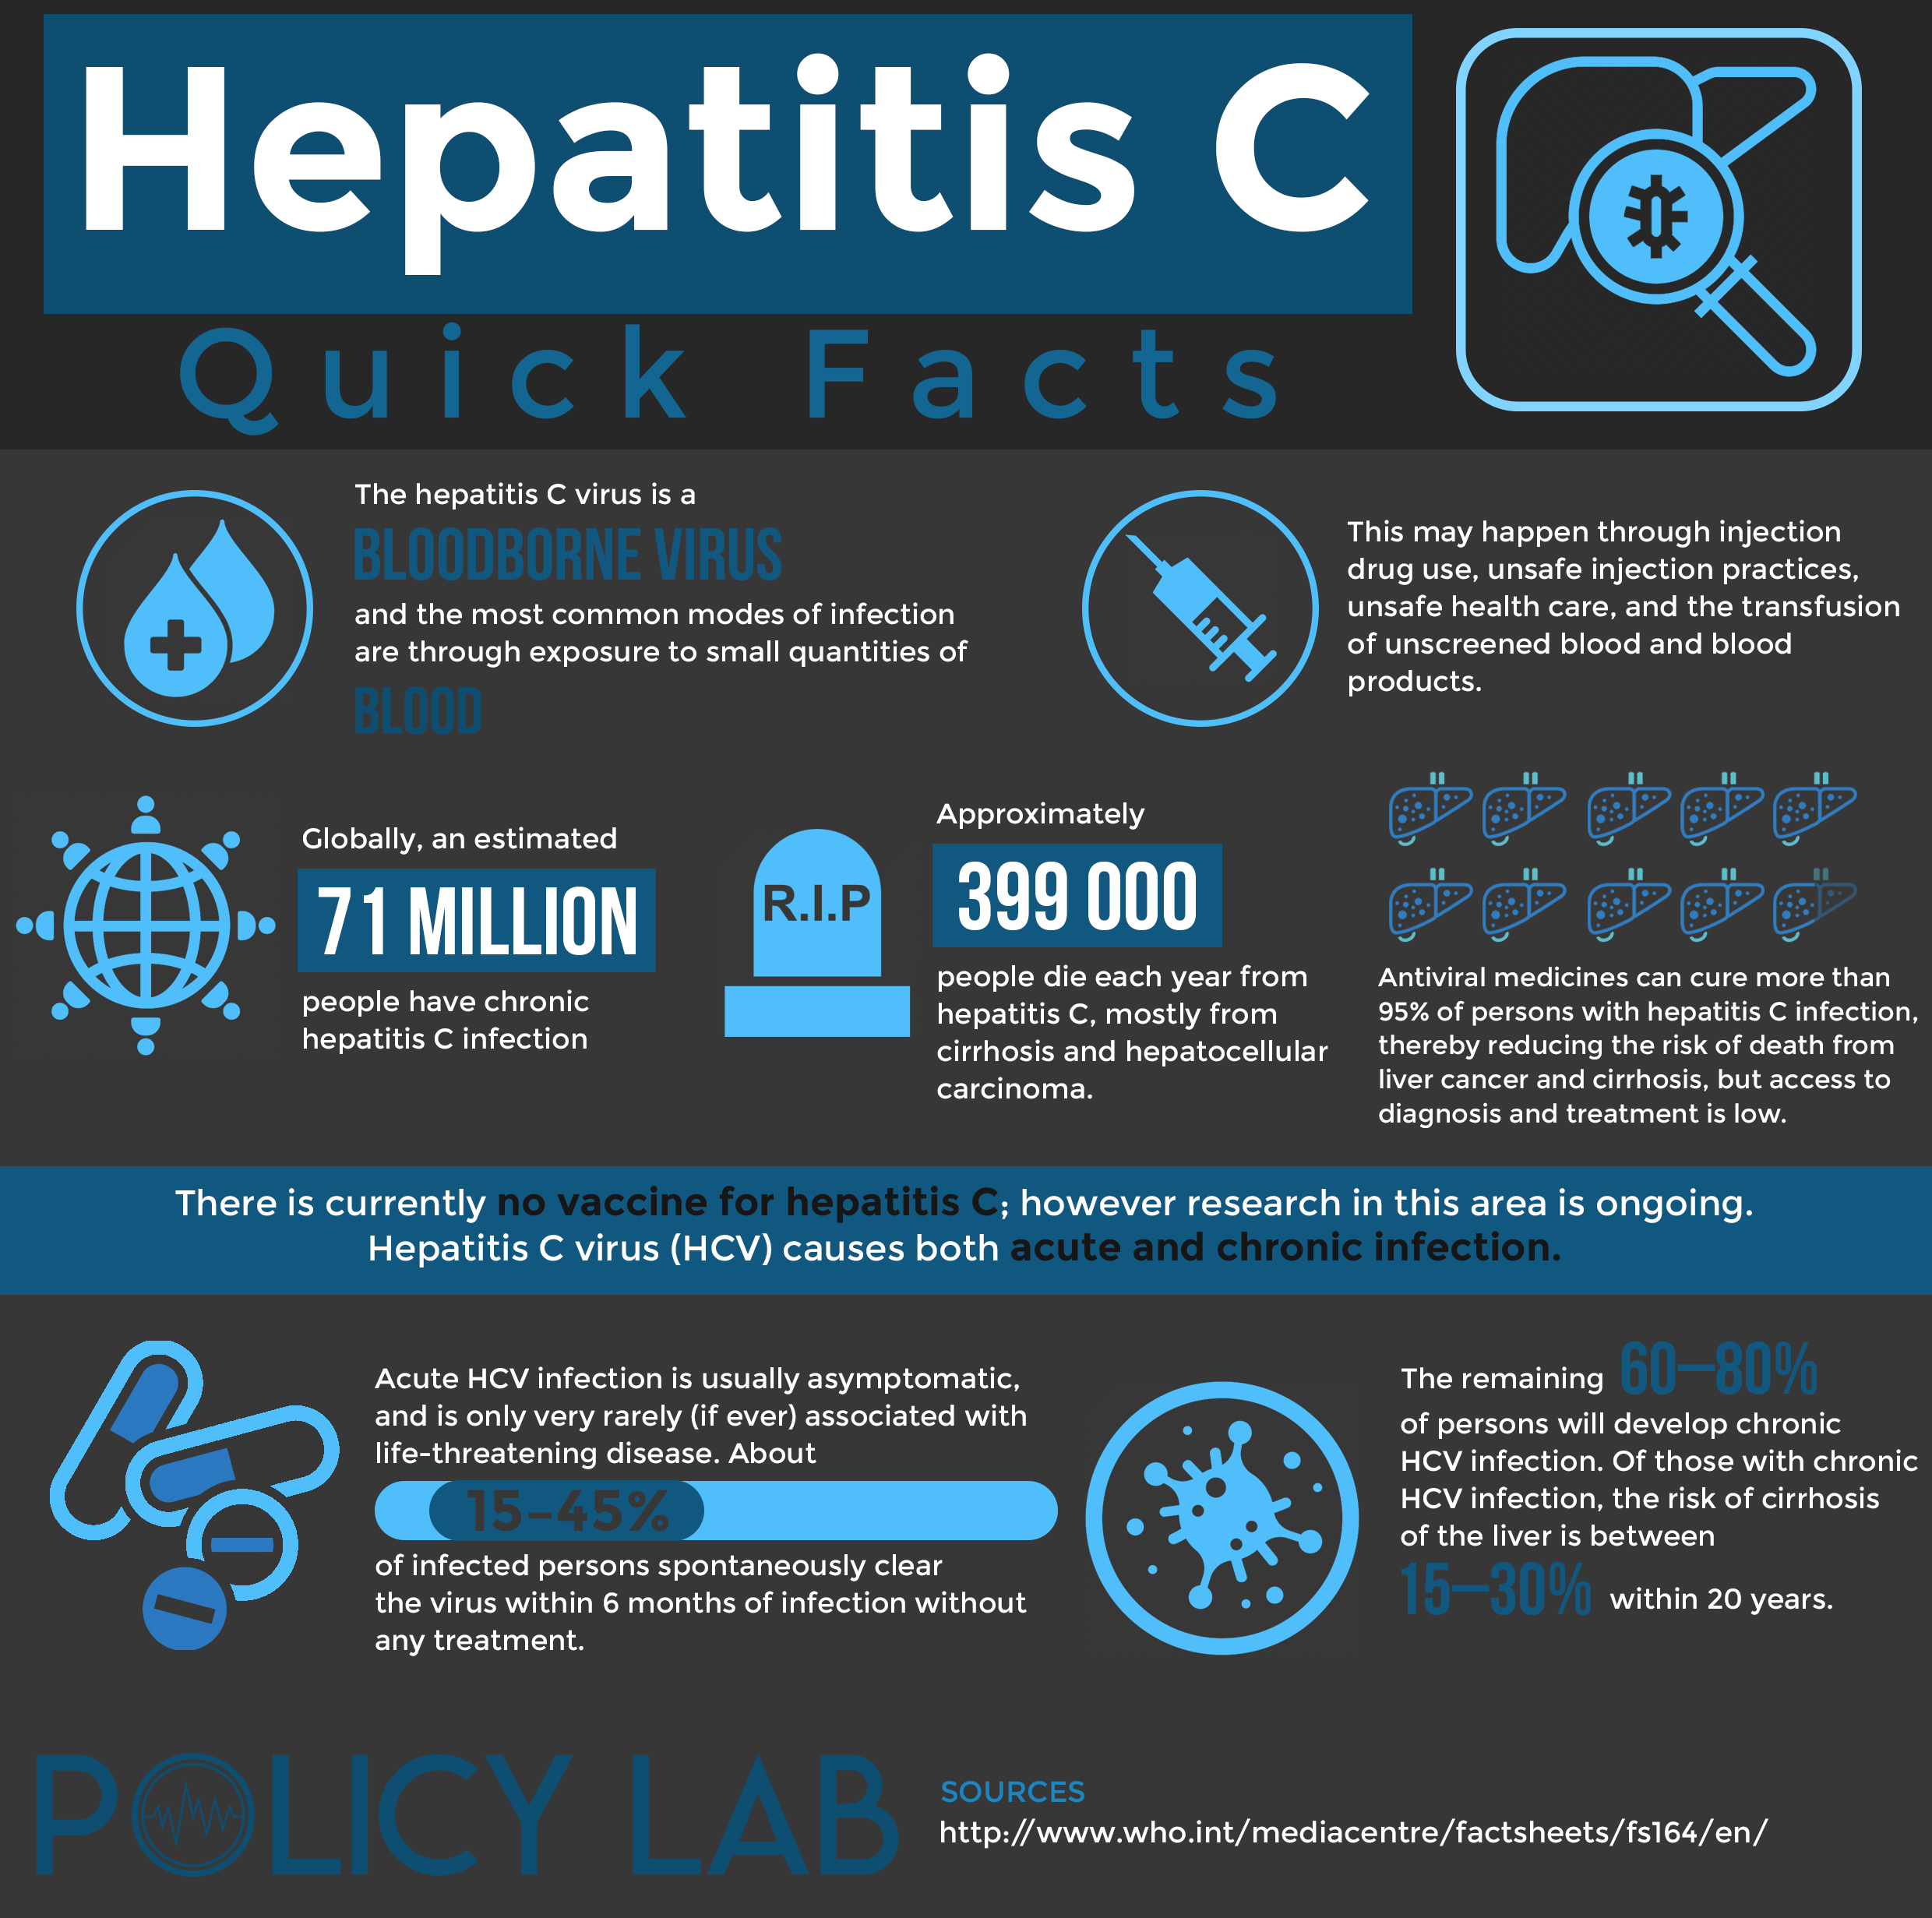 Hepatitis Infographic Image and Quick Facts